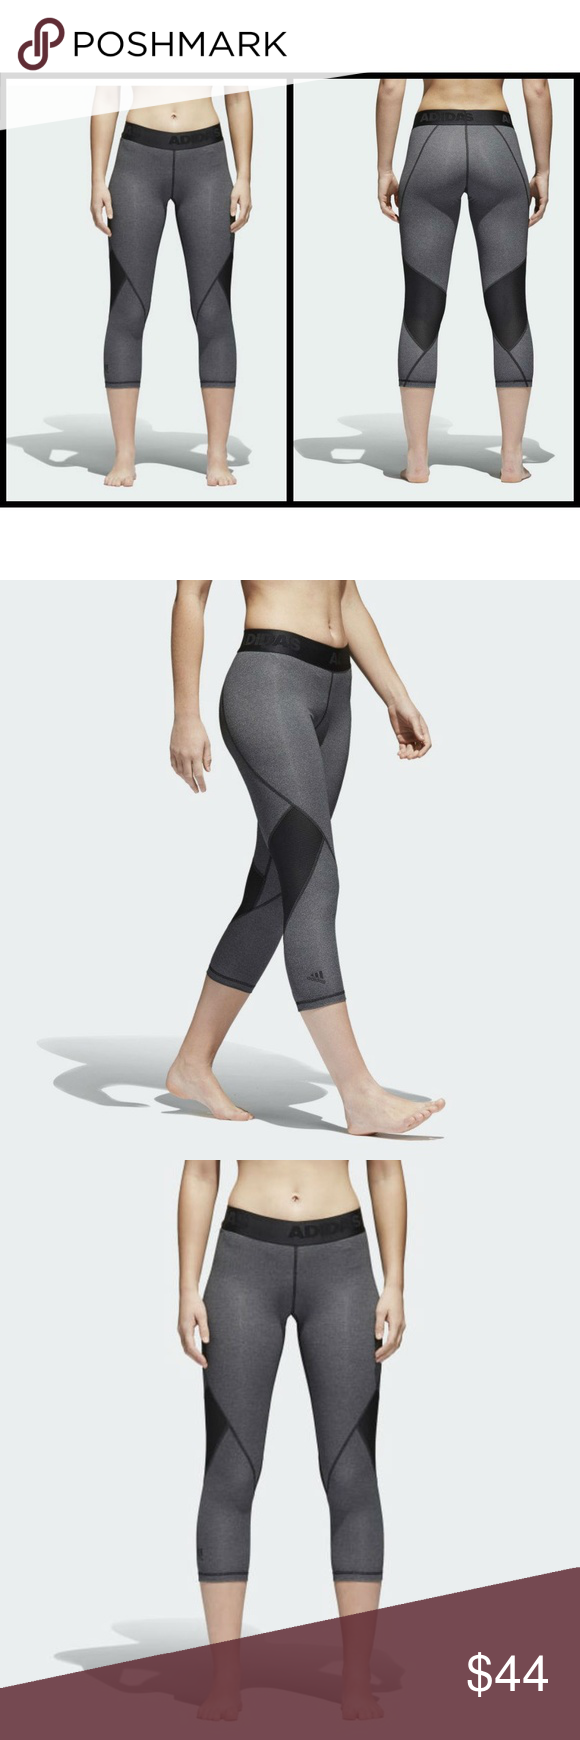 97ea6e3d62144 Adidas Alphaskin Sport Heathered 3/4 Crop Tights Dark Grey Heather / Black  Not your average base layer, Alphaskin has a pre-shaped construction tuned  to the ...